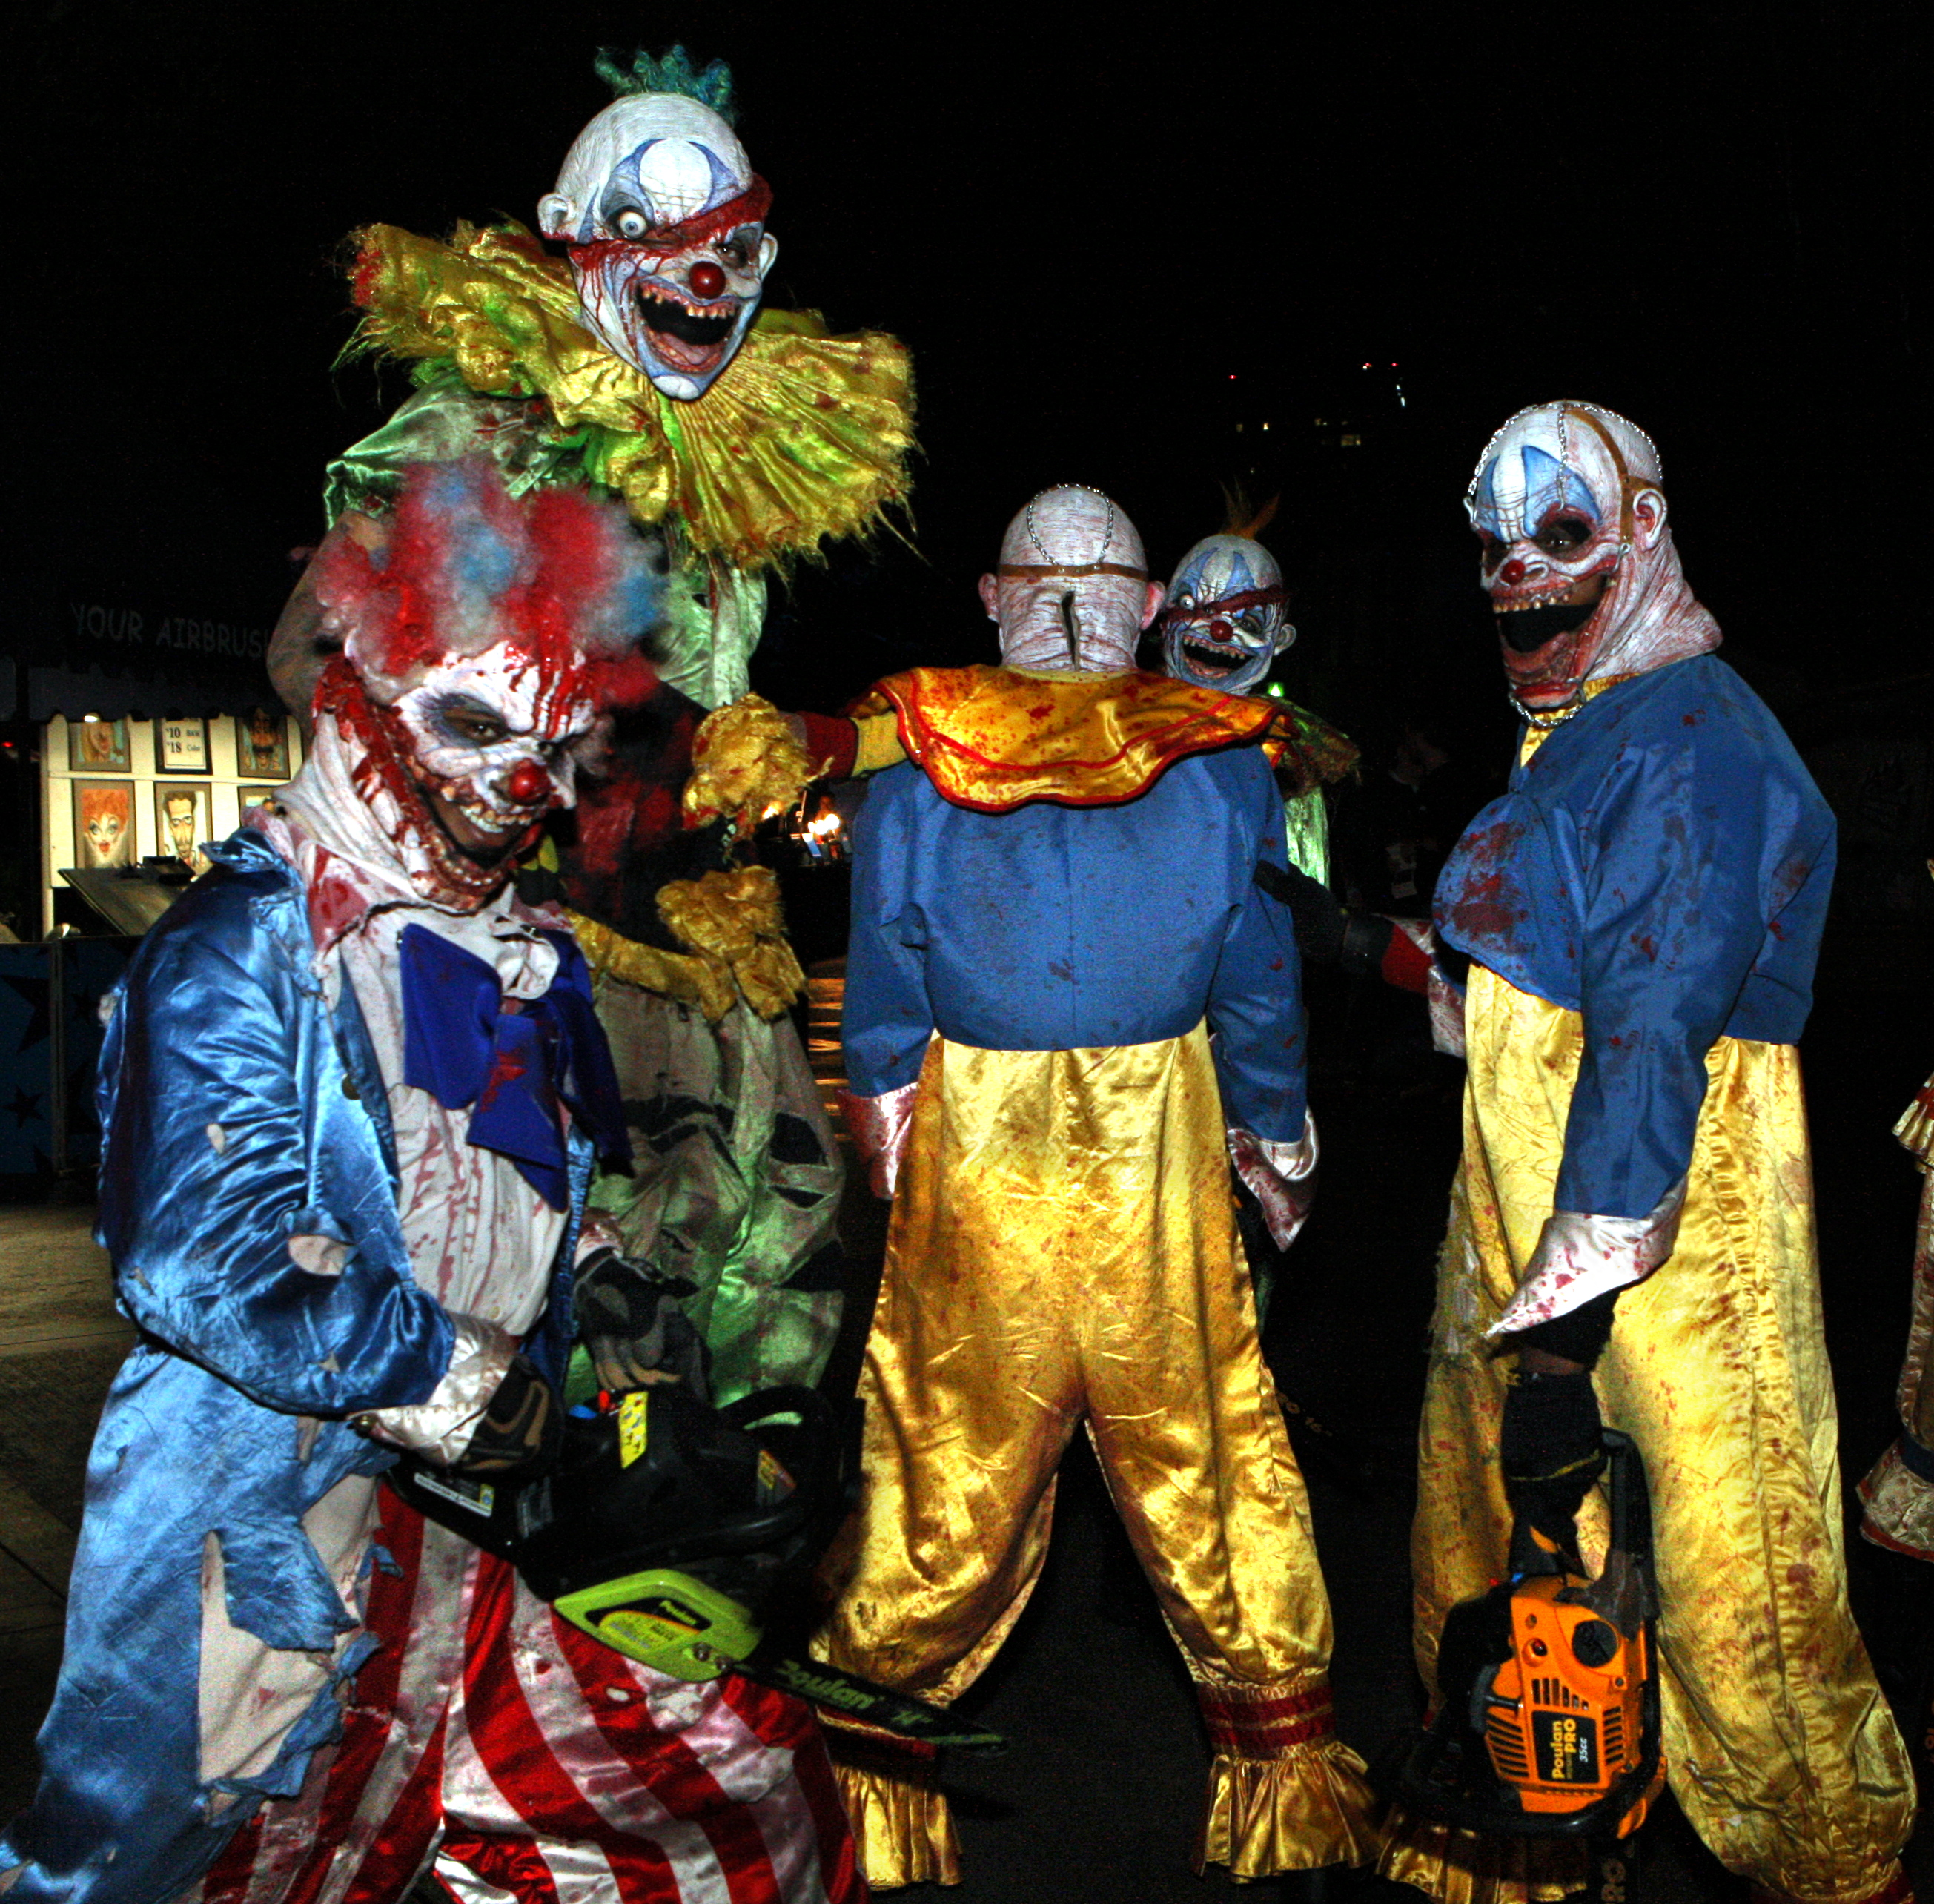 Evil clown - Wikipedia